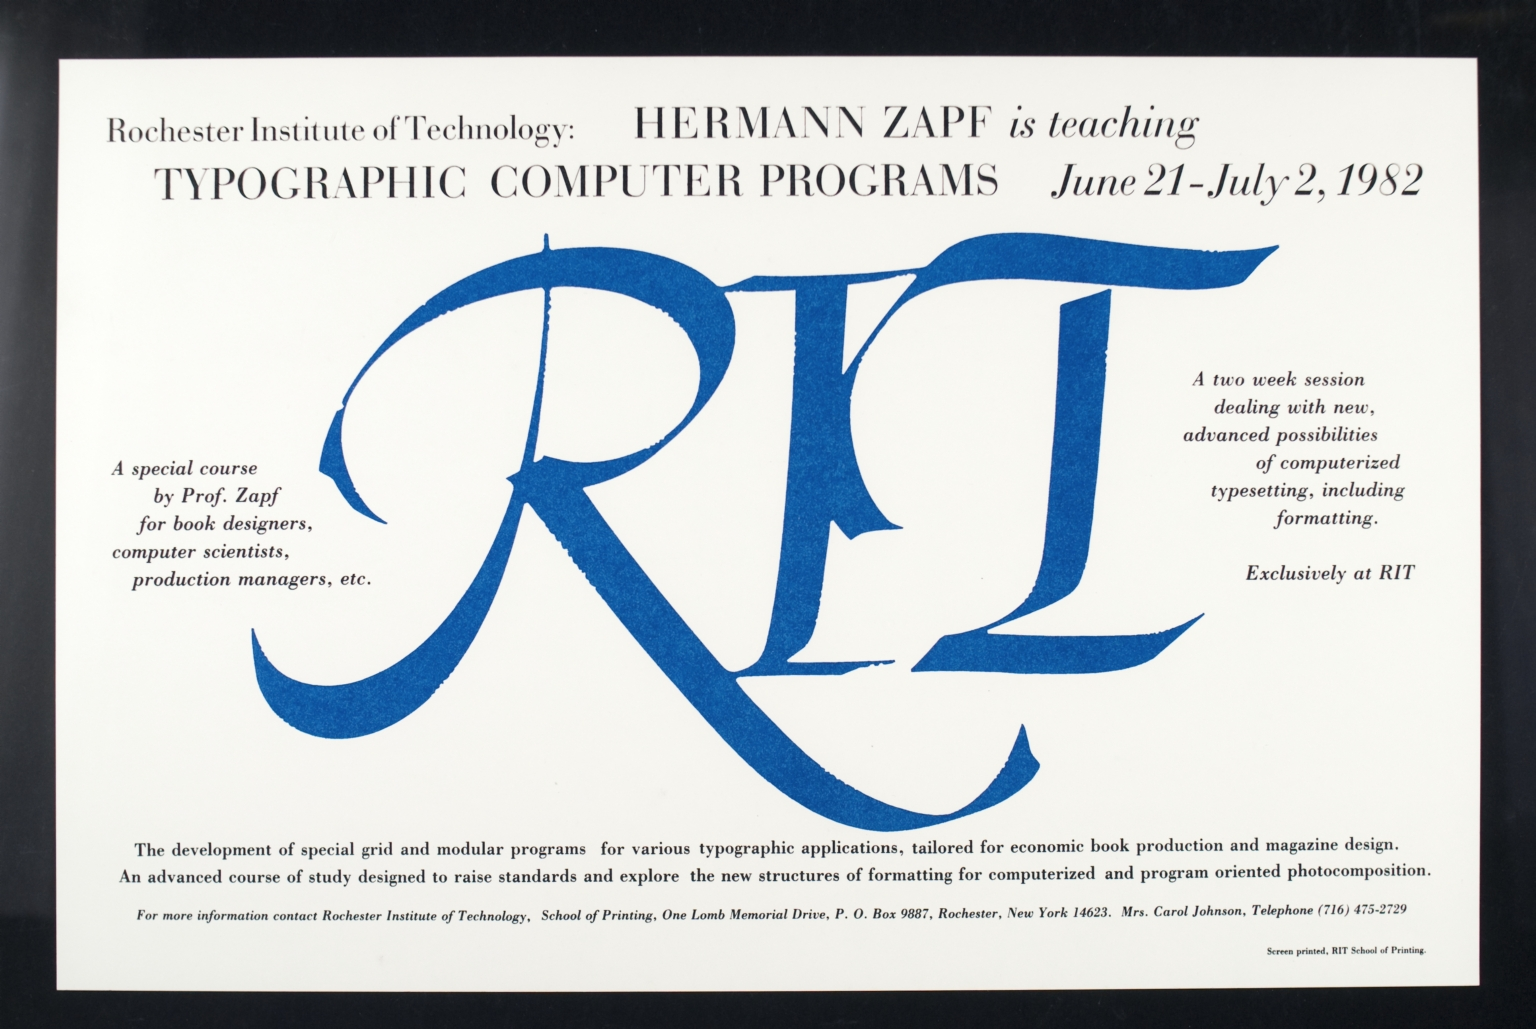 Hermann Zapf is Teaching Typographic Computer Programs, June 21-July 2, 1982